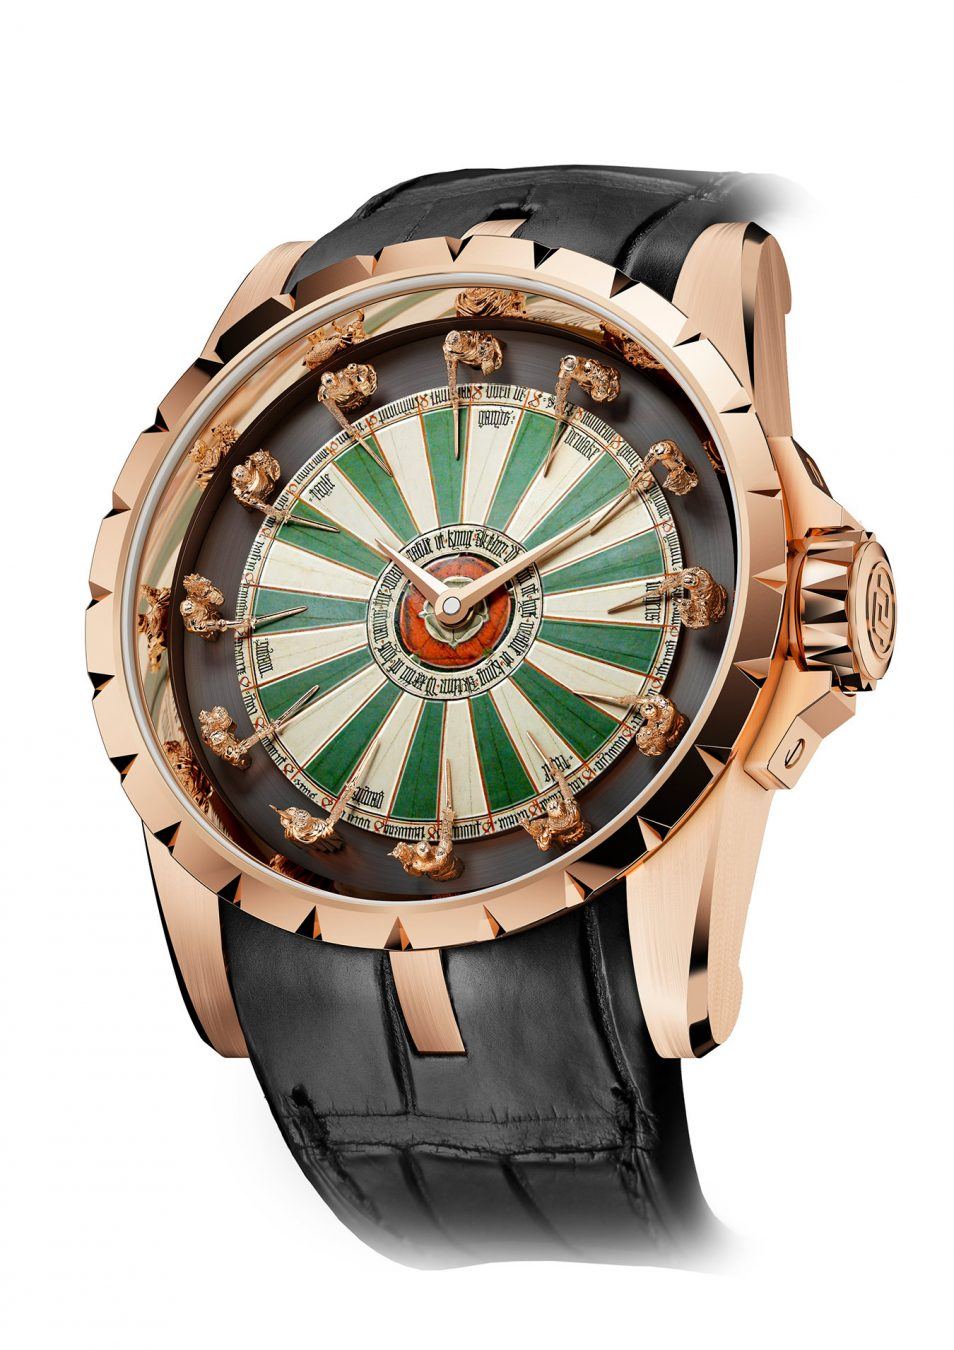 12 Knights Of The Round Table.Roger Dubuis Excalibur Round Table Watch Montecristo